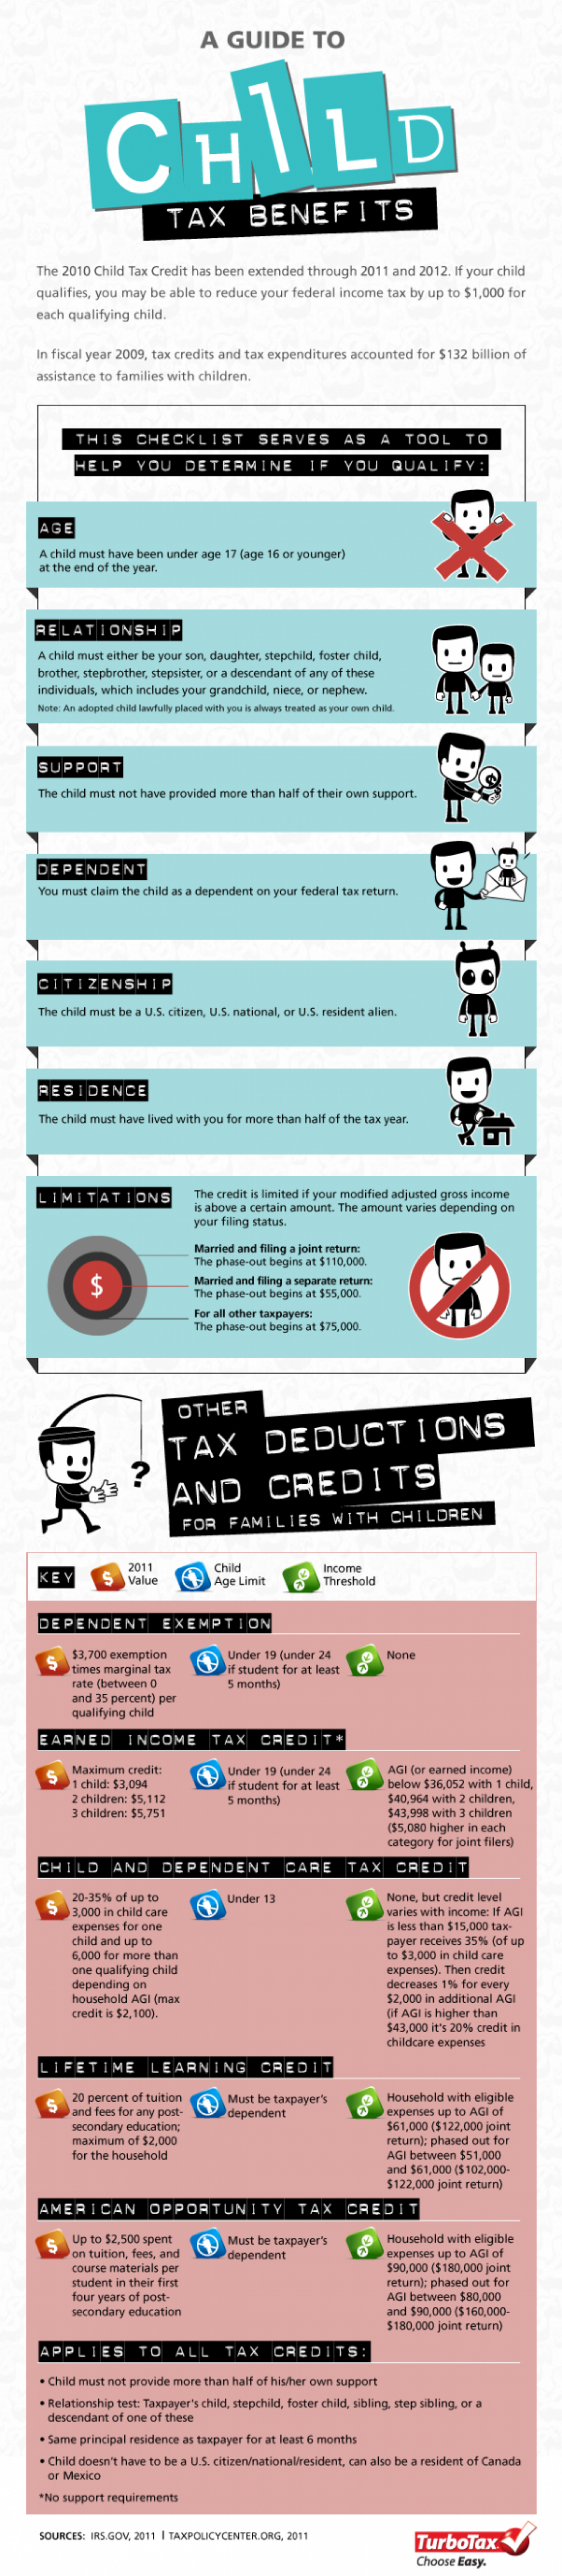 A Guide to Child Tax Benefits Infographic